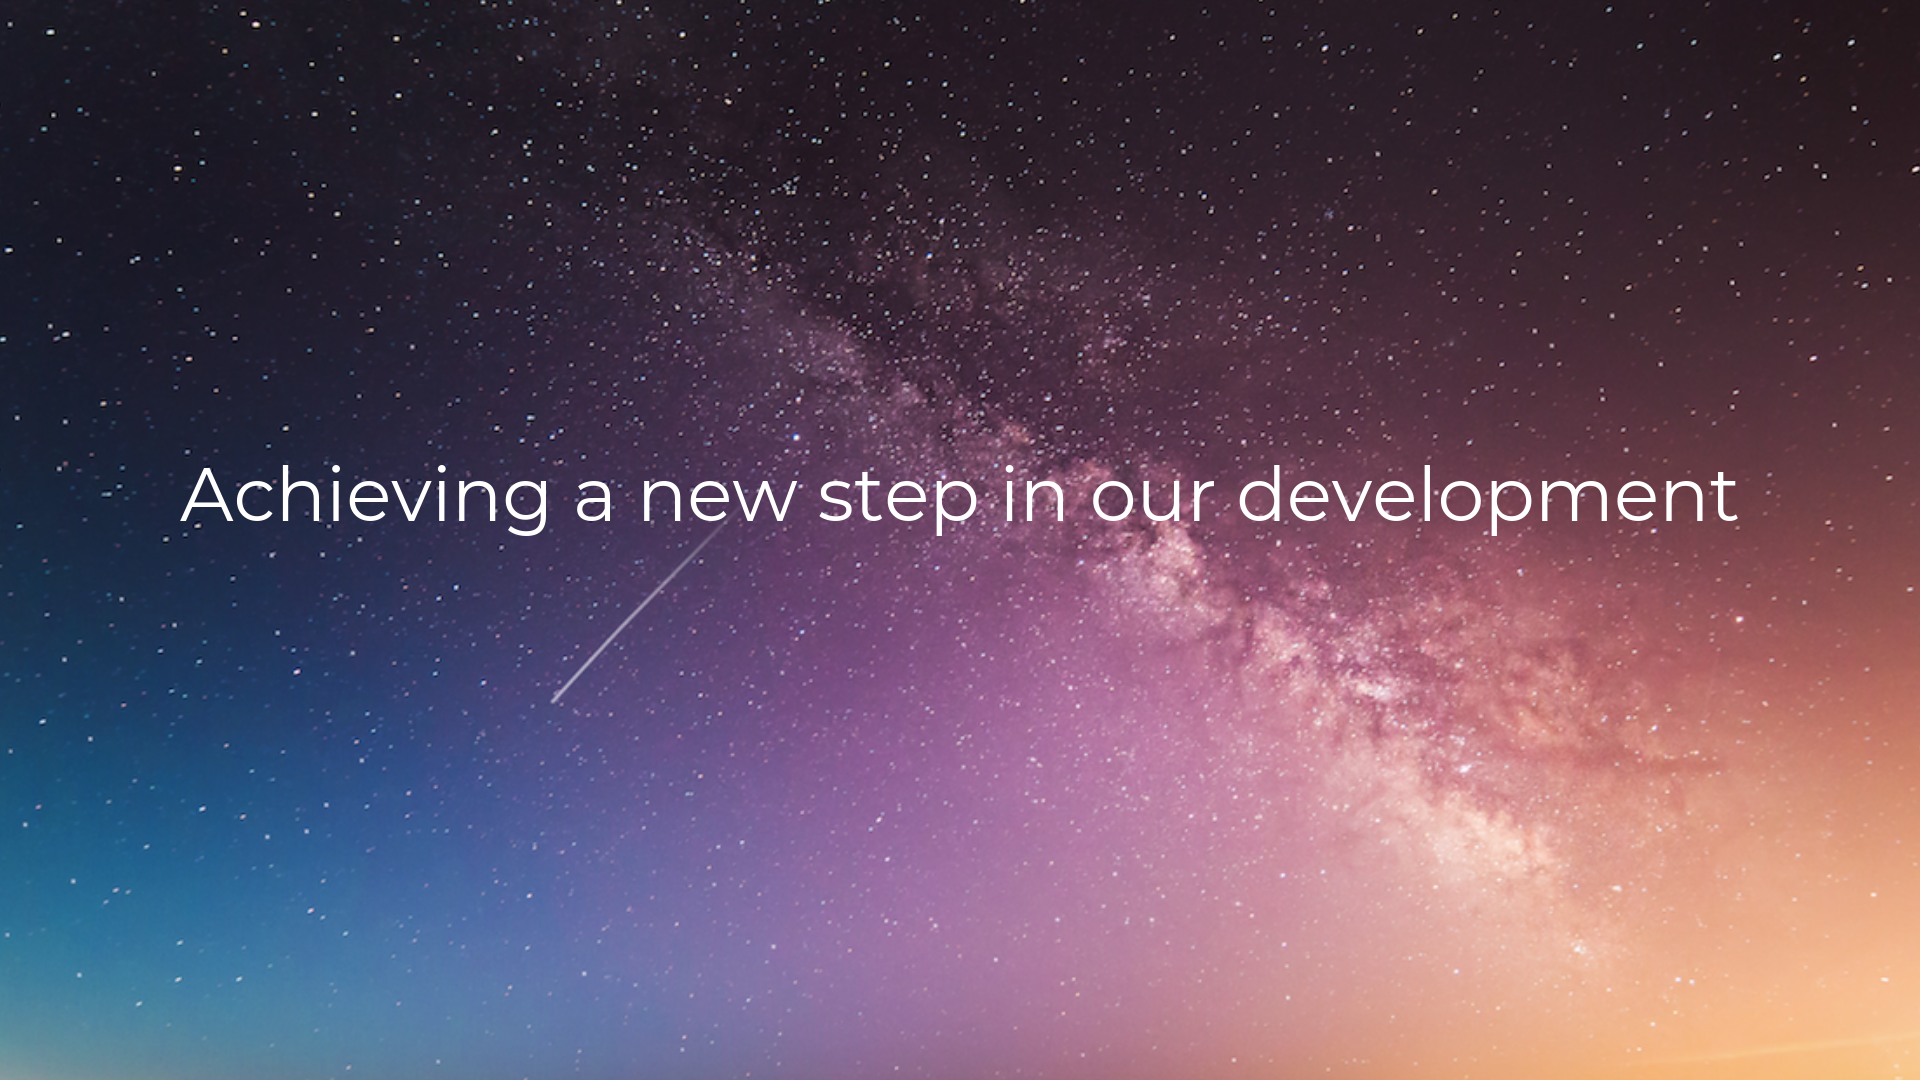 Achieving a new step in our development